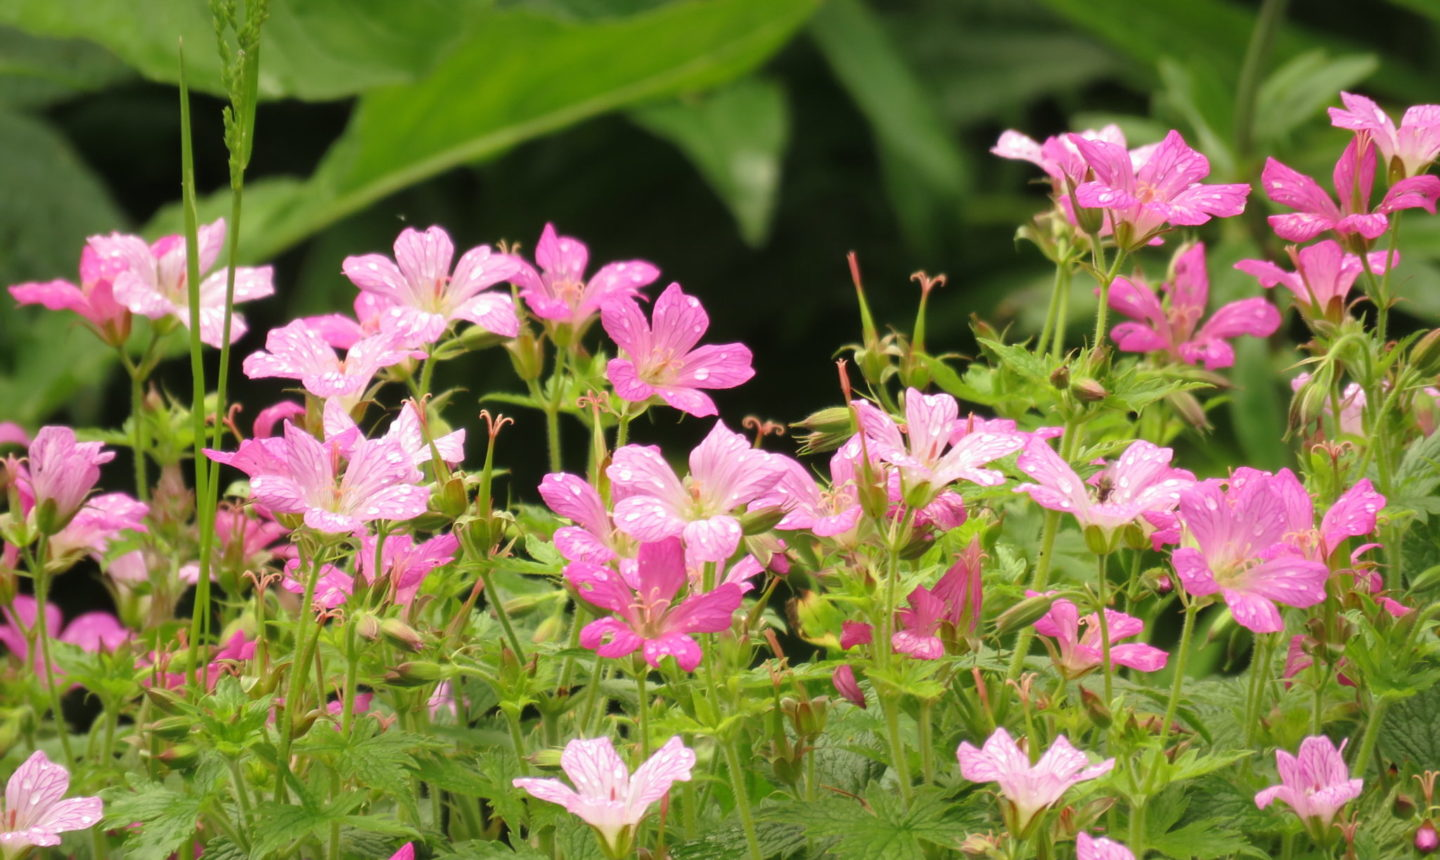 Pink flowers in the garden of the National Trust's Coleridge Cottage